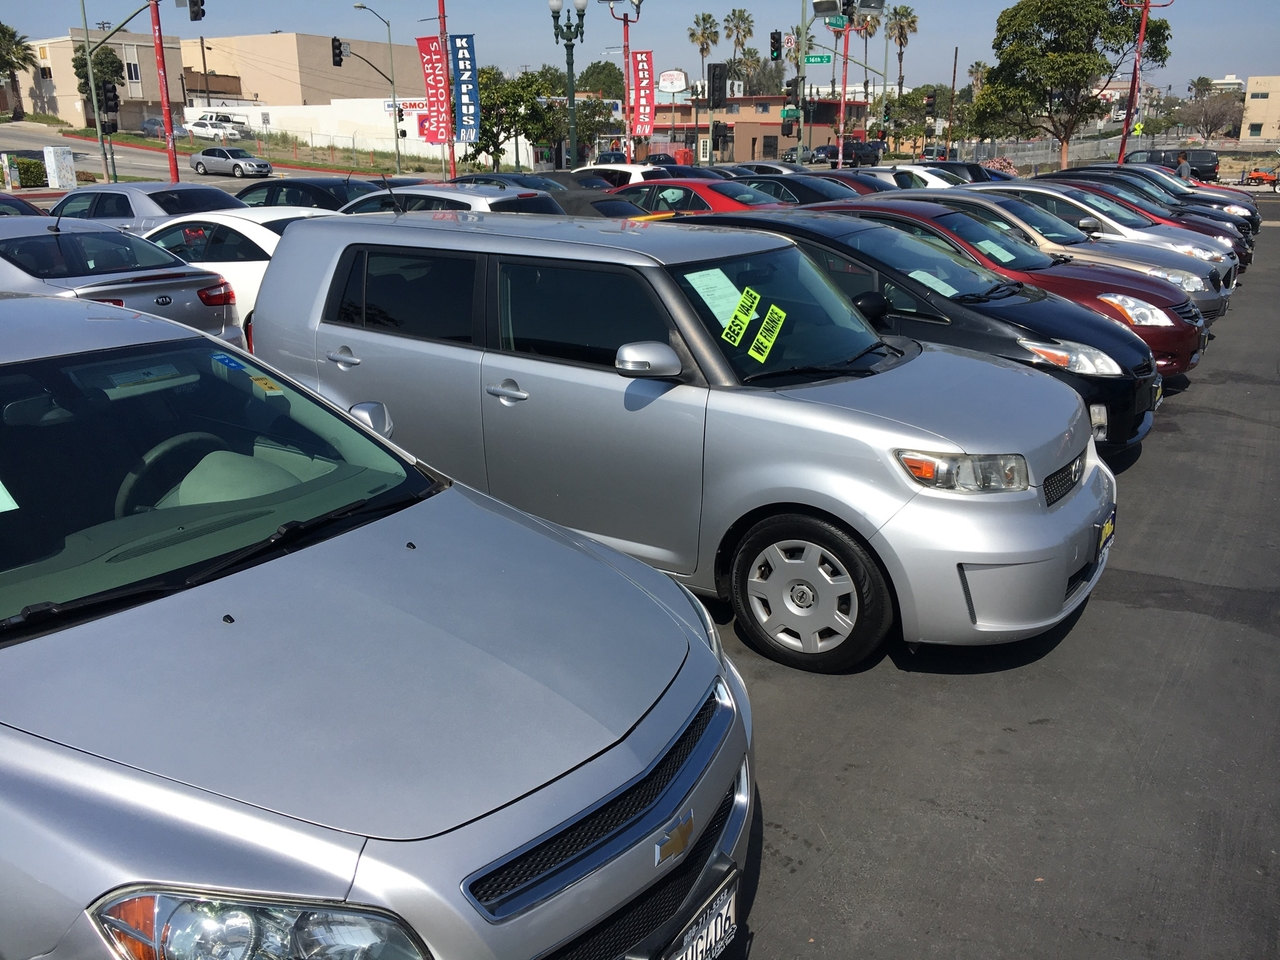 Used Cars National City - KarzPlus (877) 797-3254